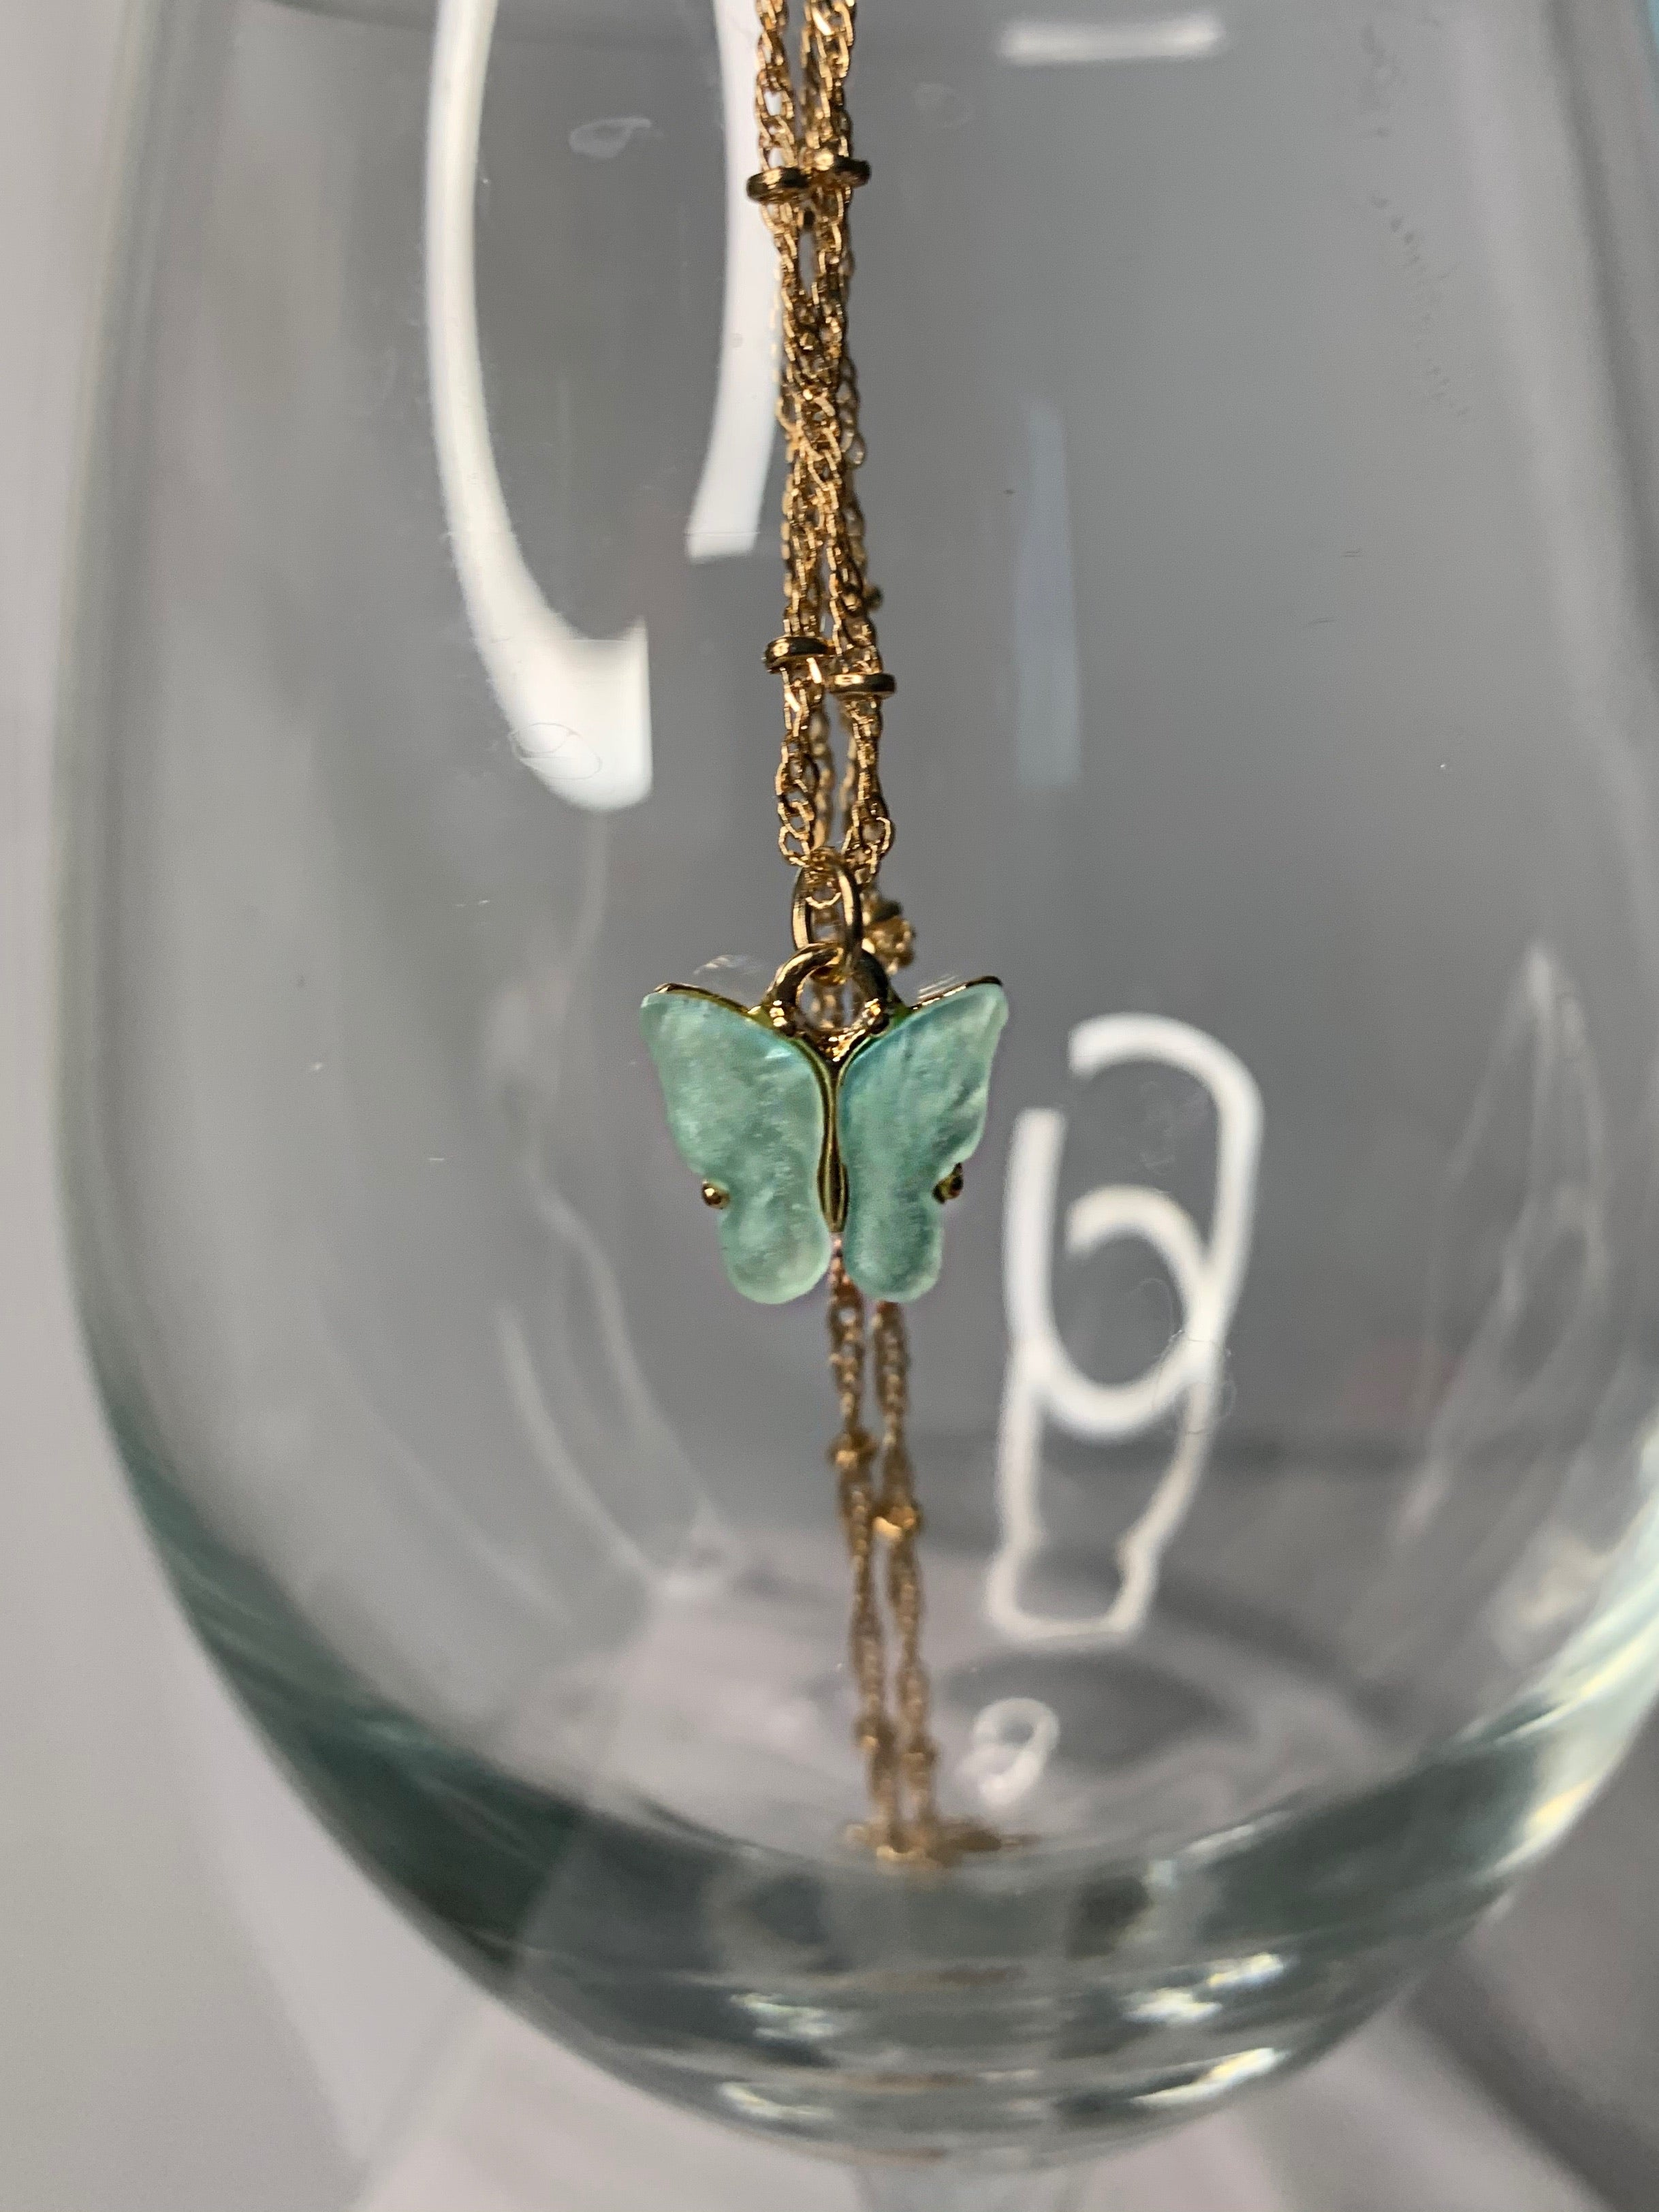 Minty Mariposa Necklace